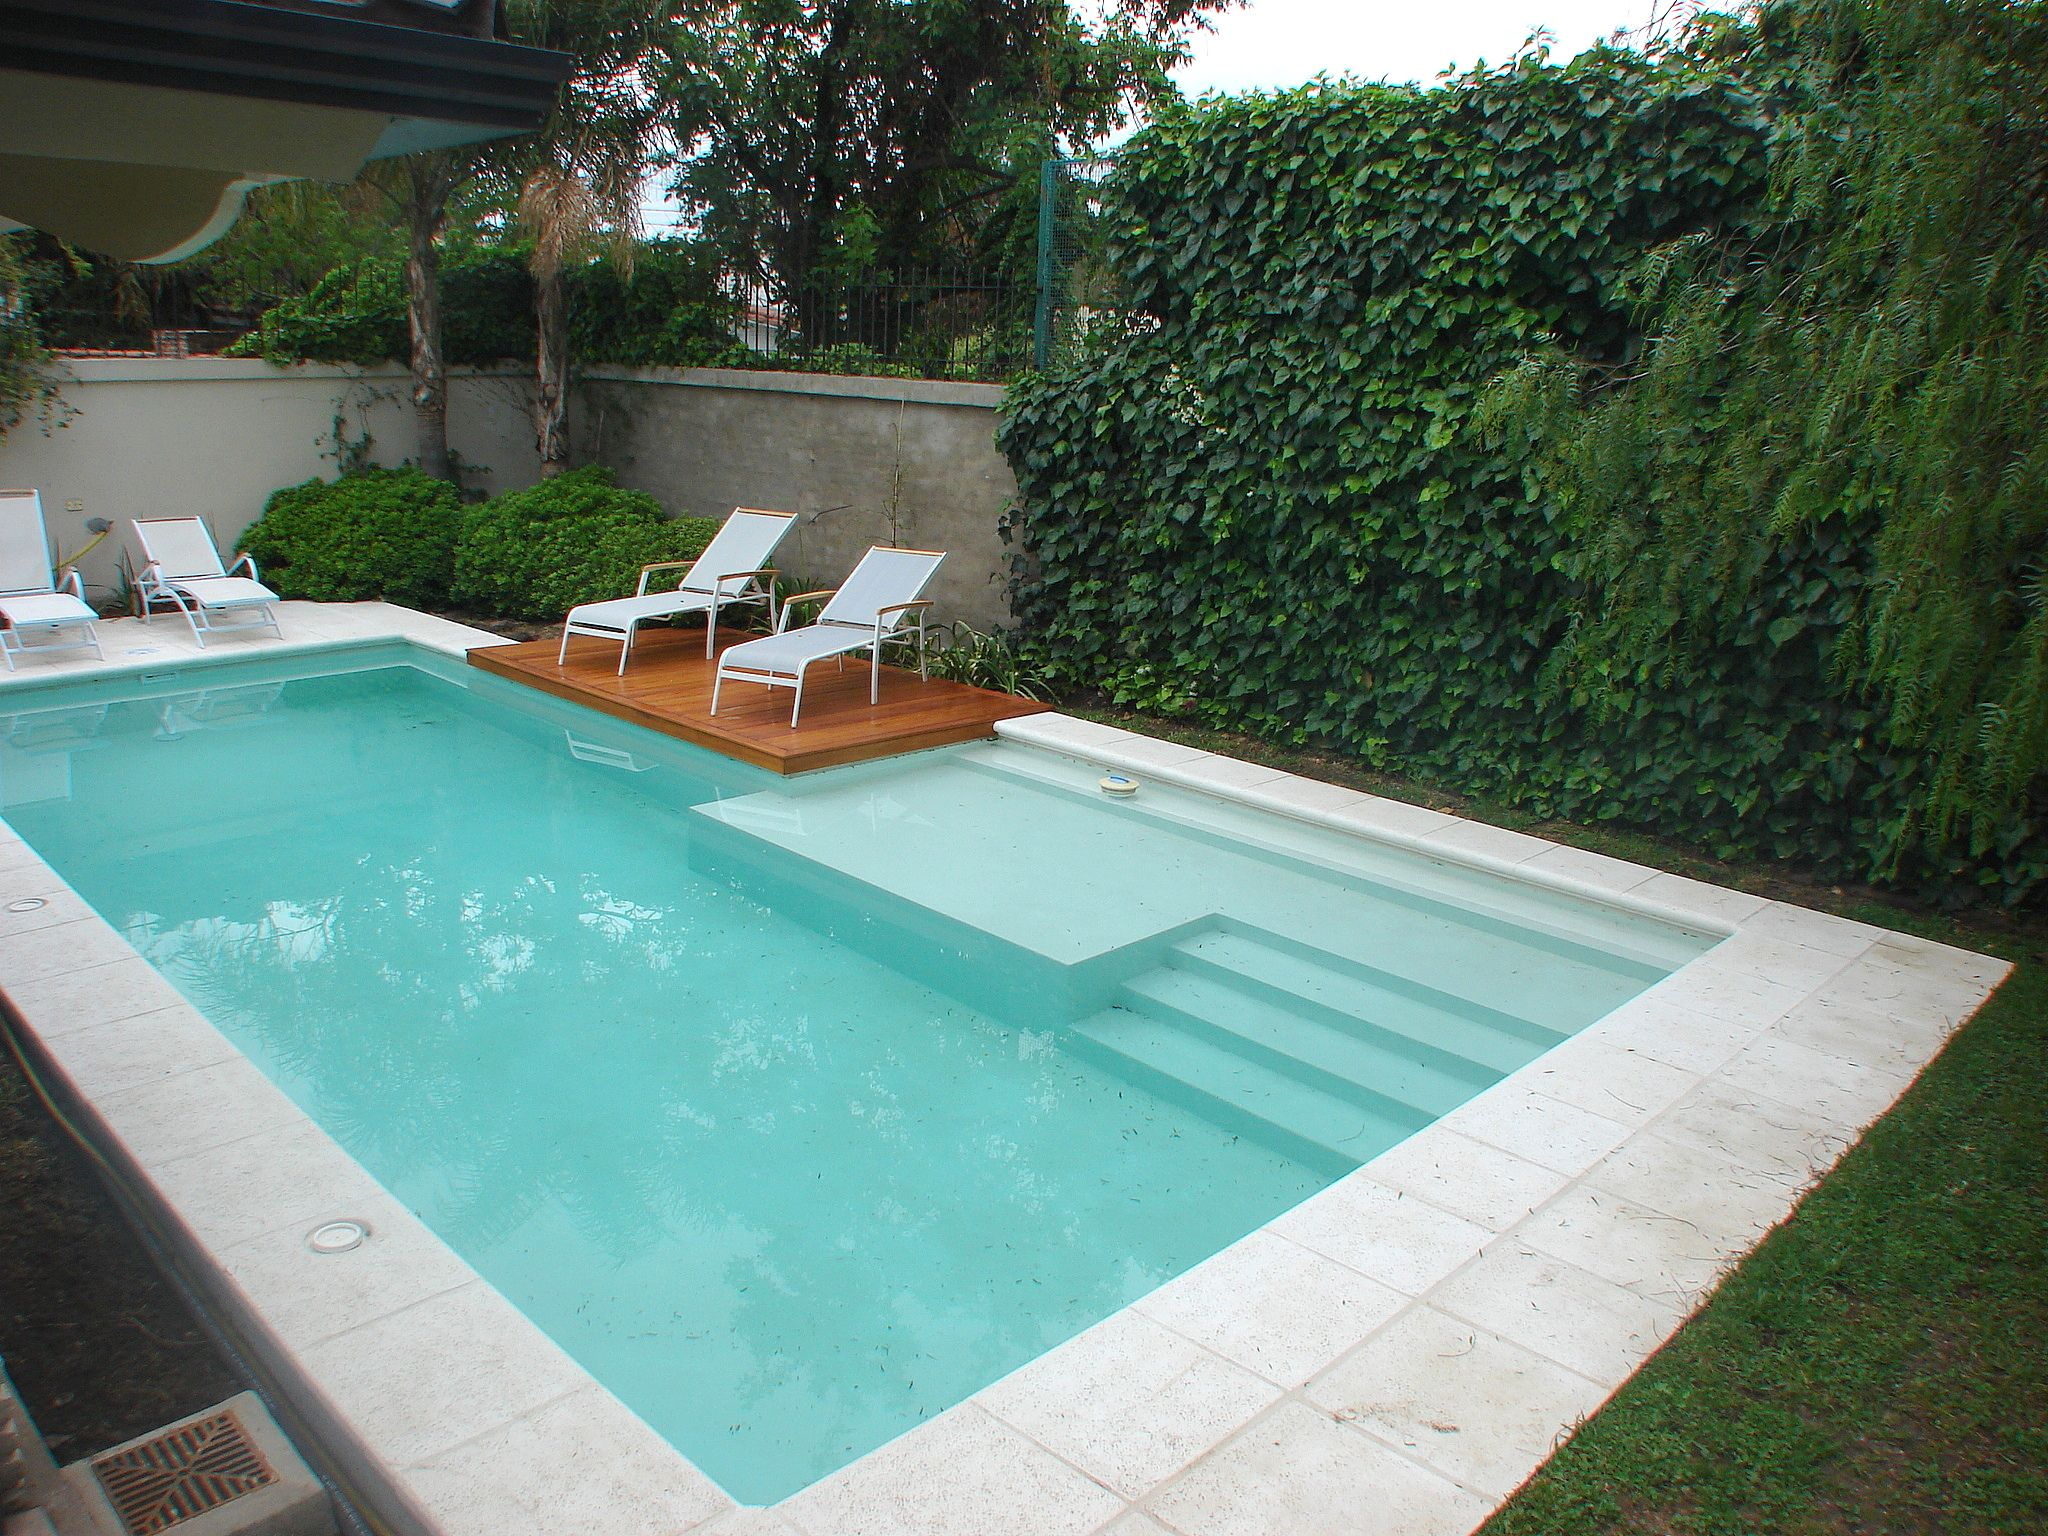 Piscina familiar swimmingpool deck de madera - Case americane con piscina ...